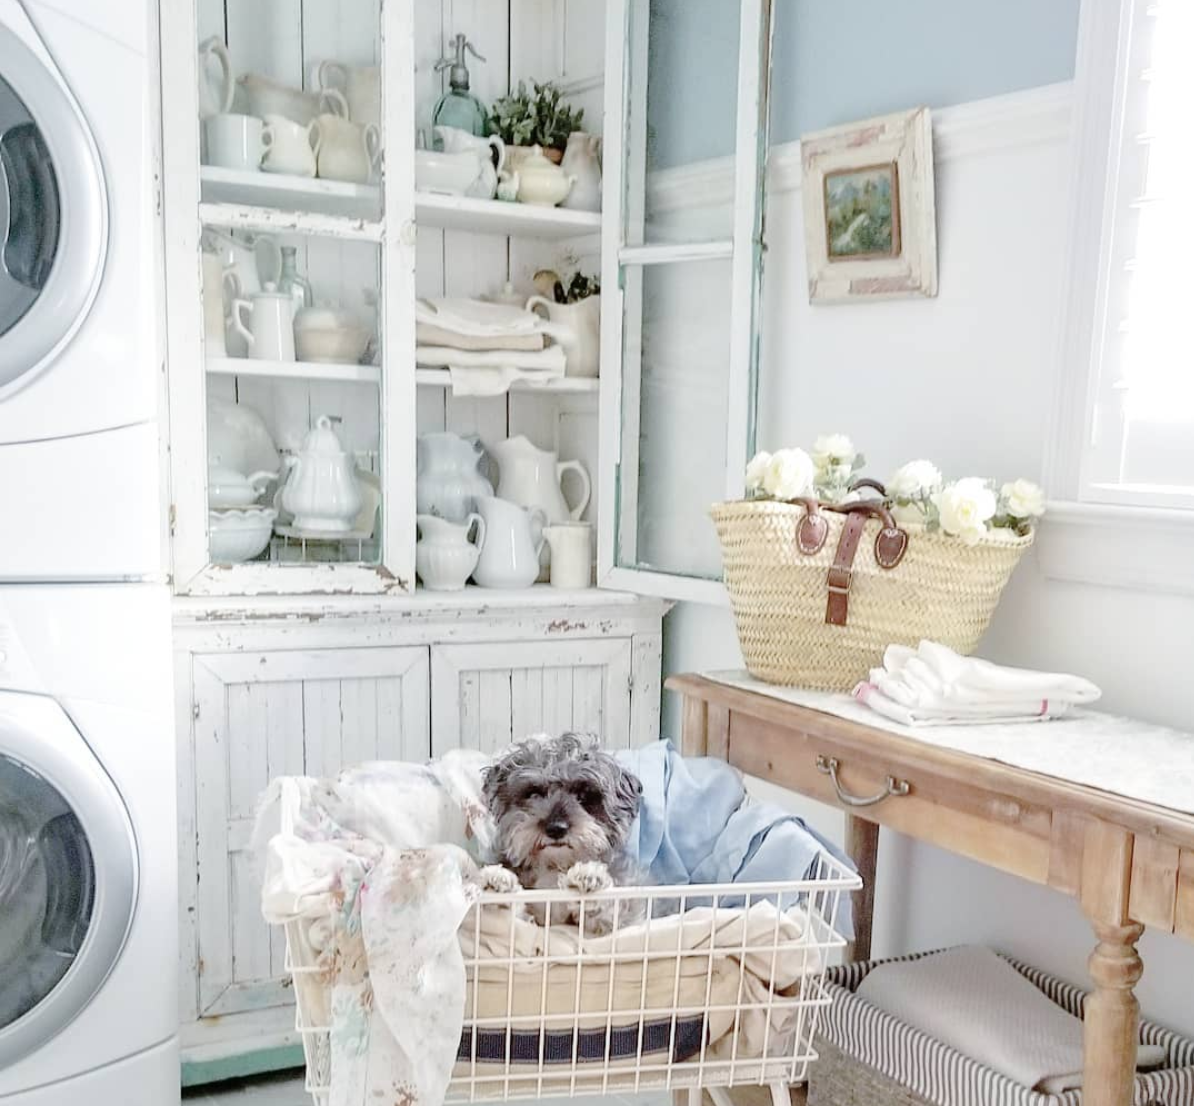 Vintage style beautiful laundry room by Pancake Hill with a sweet schnauzer in the laundry basket! Come enjoy Traditional Laundry Room and Mud Room Design Ideas, Resources, and Humor Quotes!